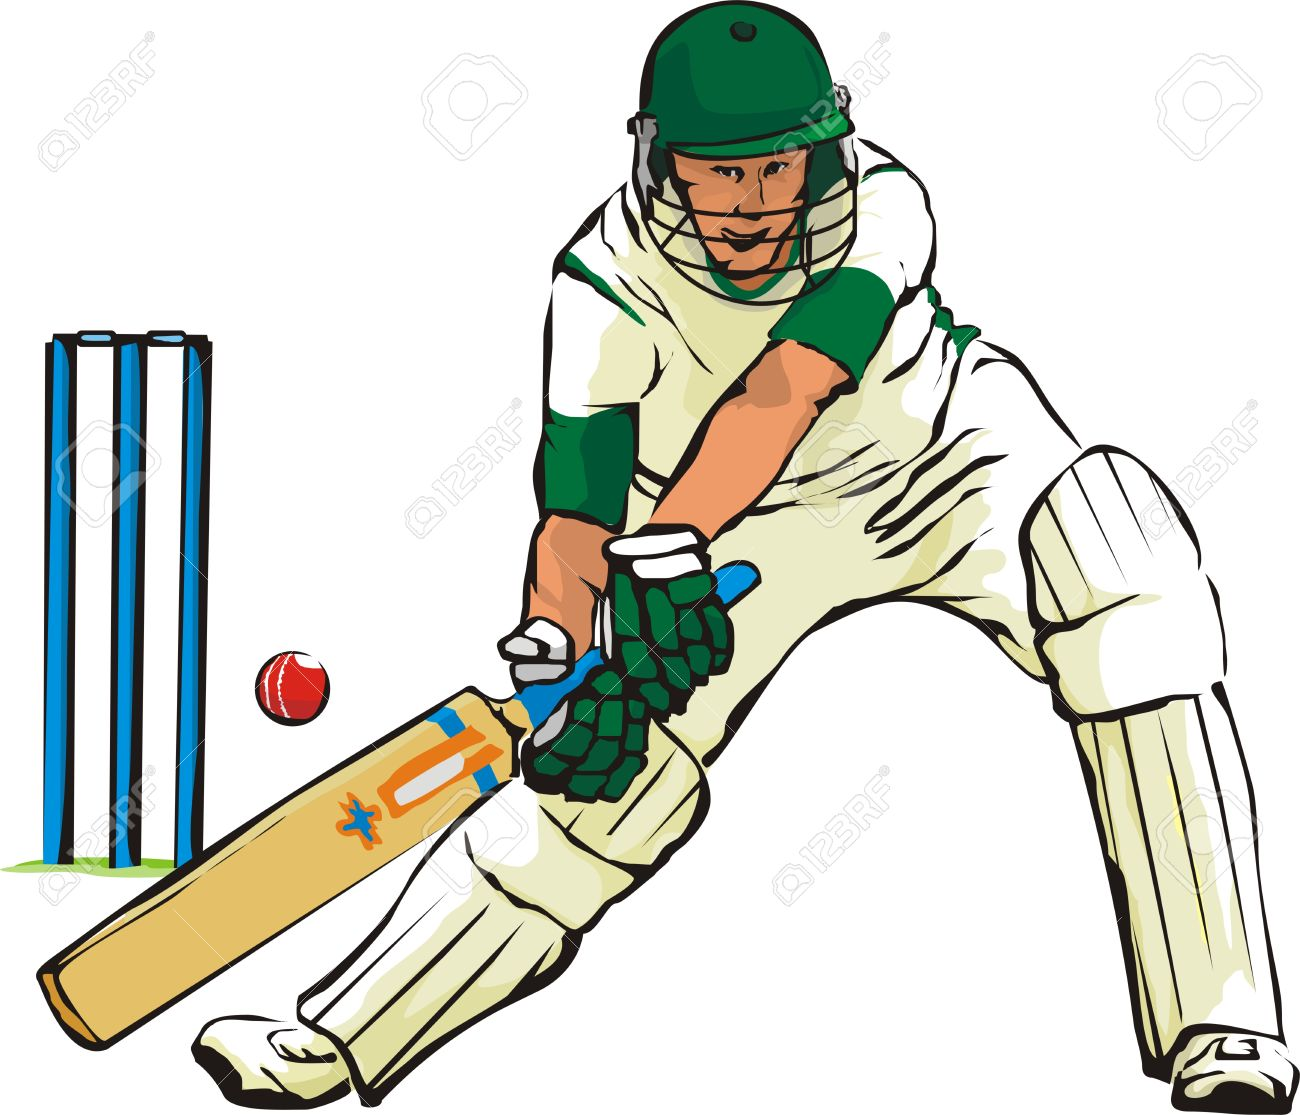 Cricket clipart #14, Download drawings